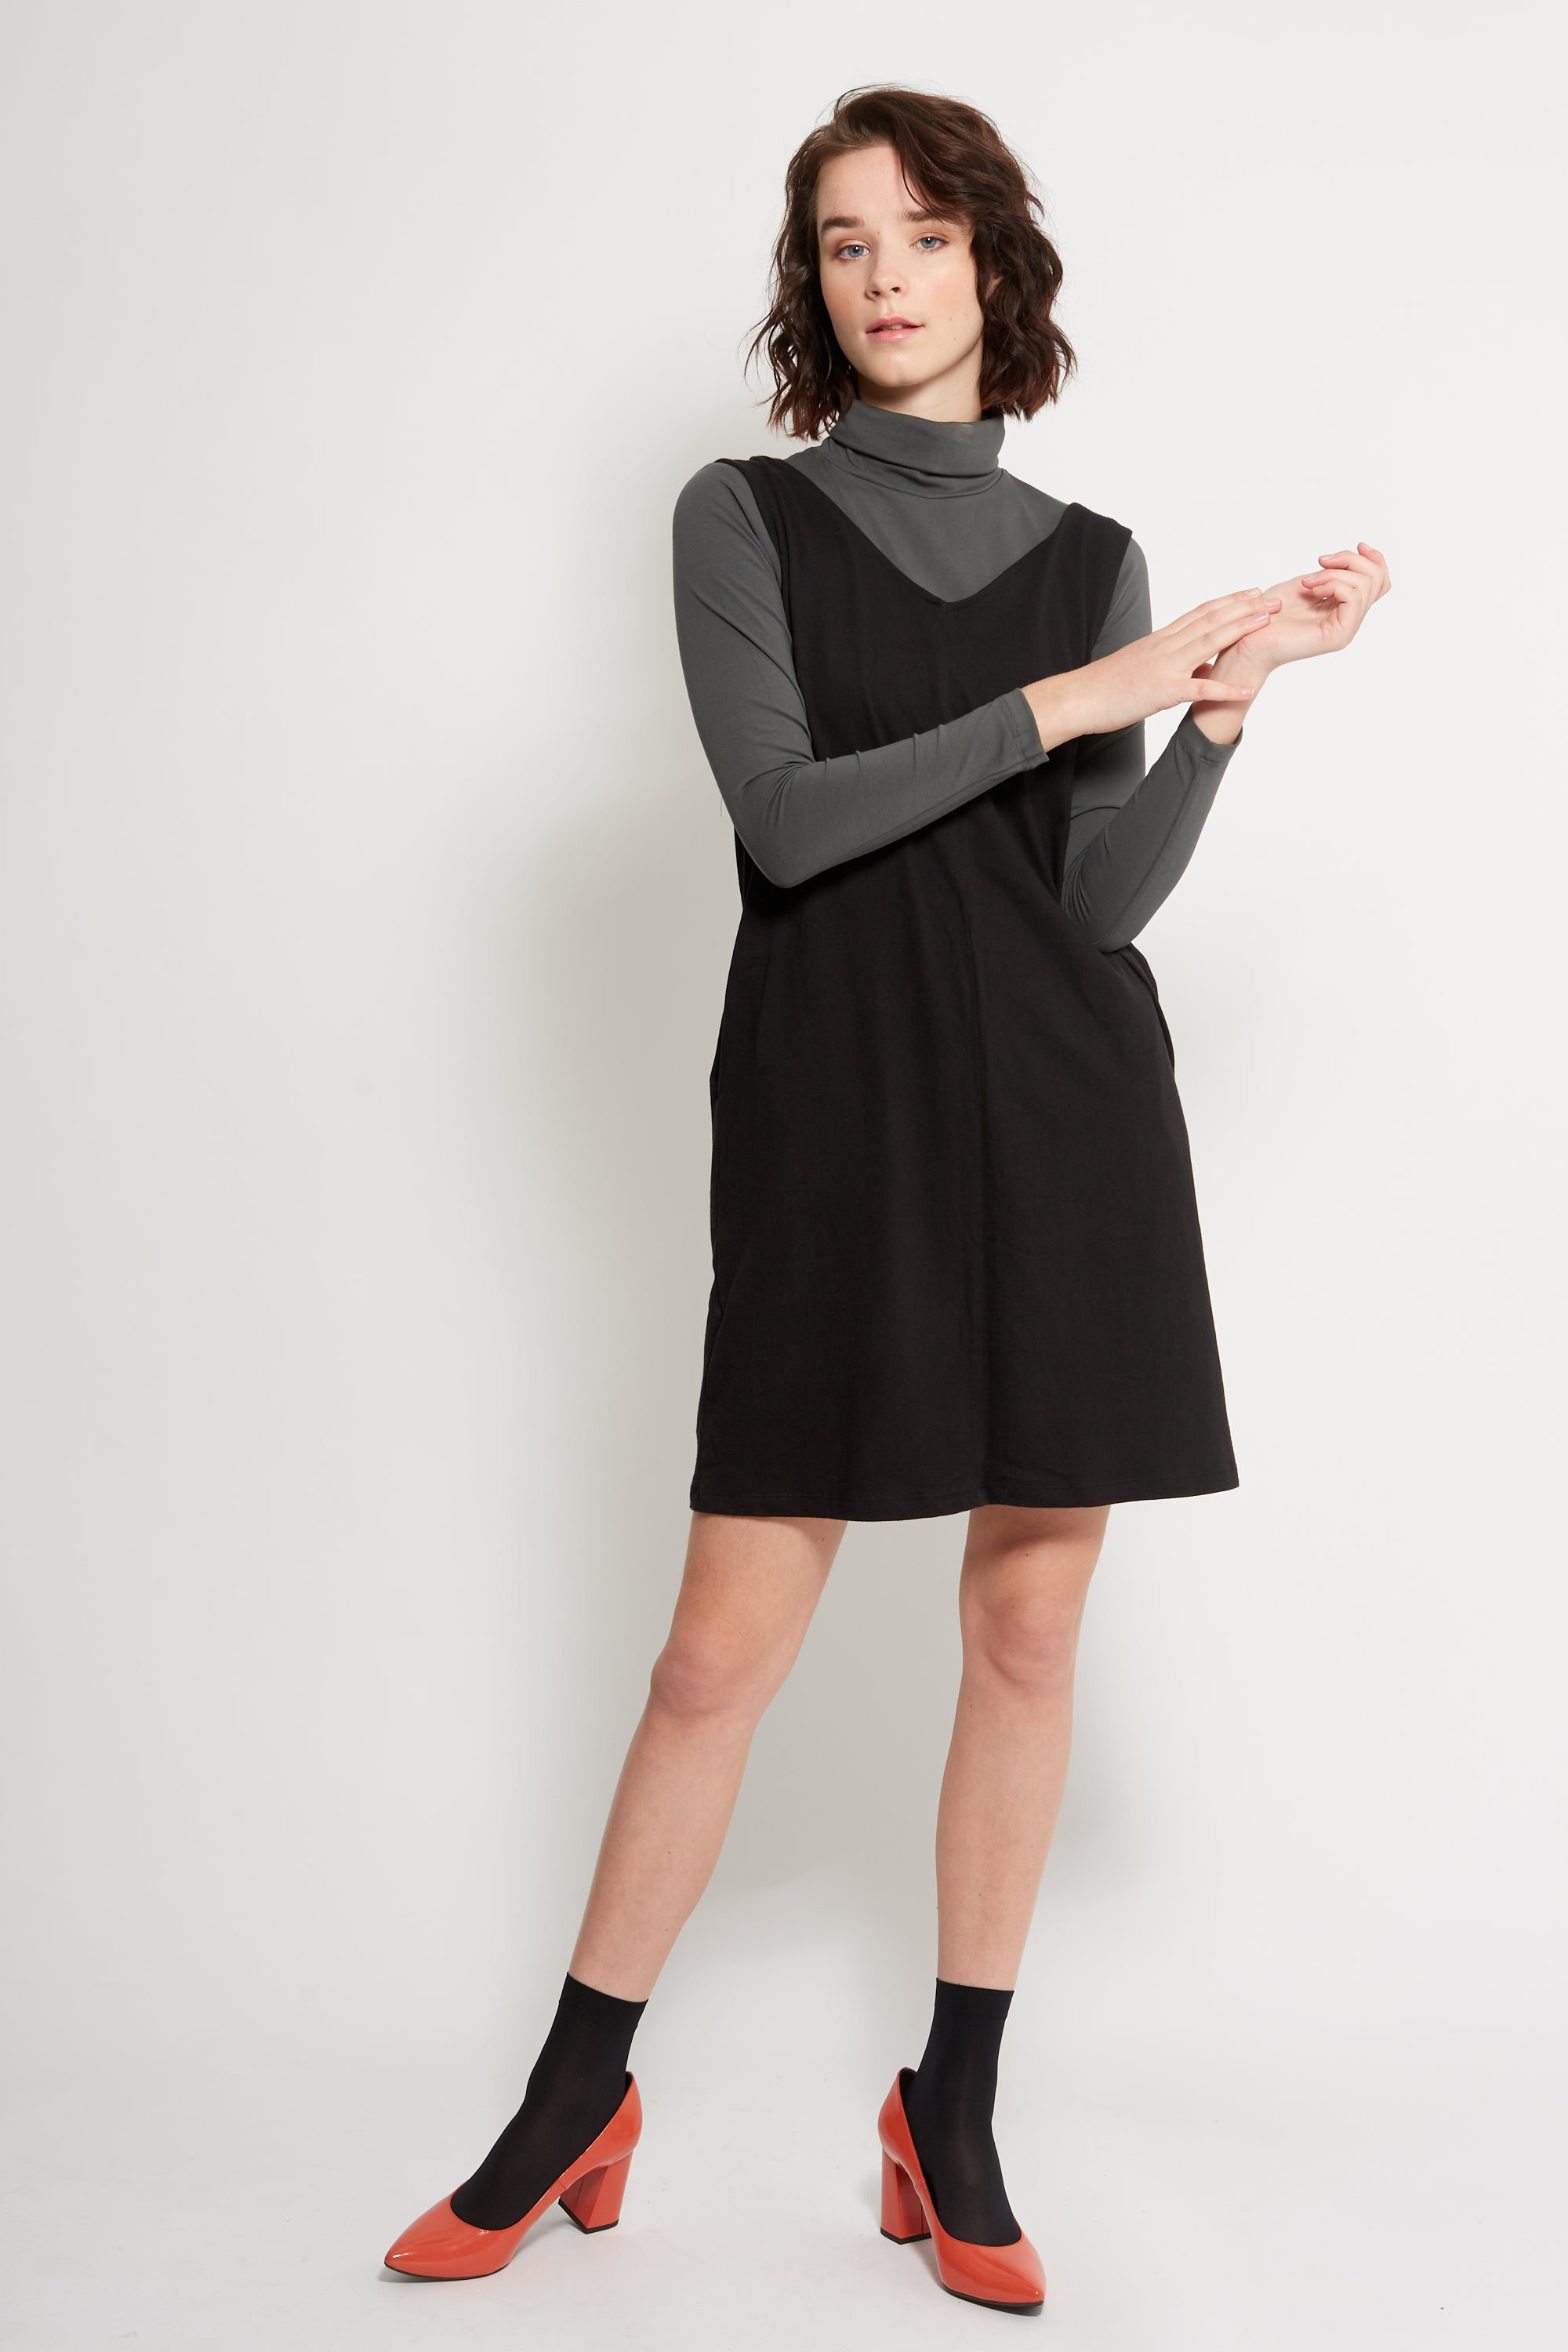 Dorsu | Ethical Clothing Australia | Shift Dress Grey | ECO.MONO